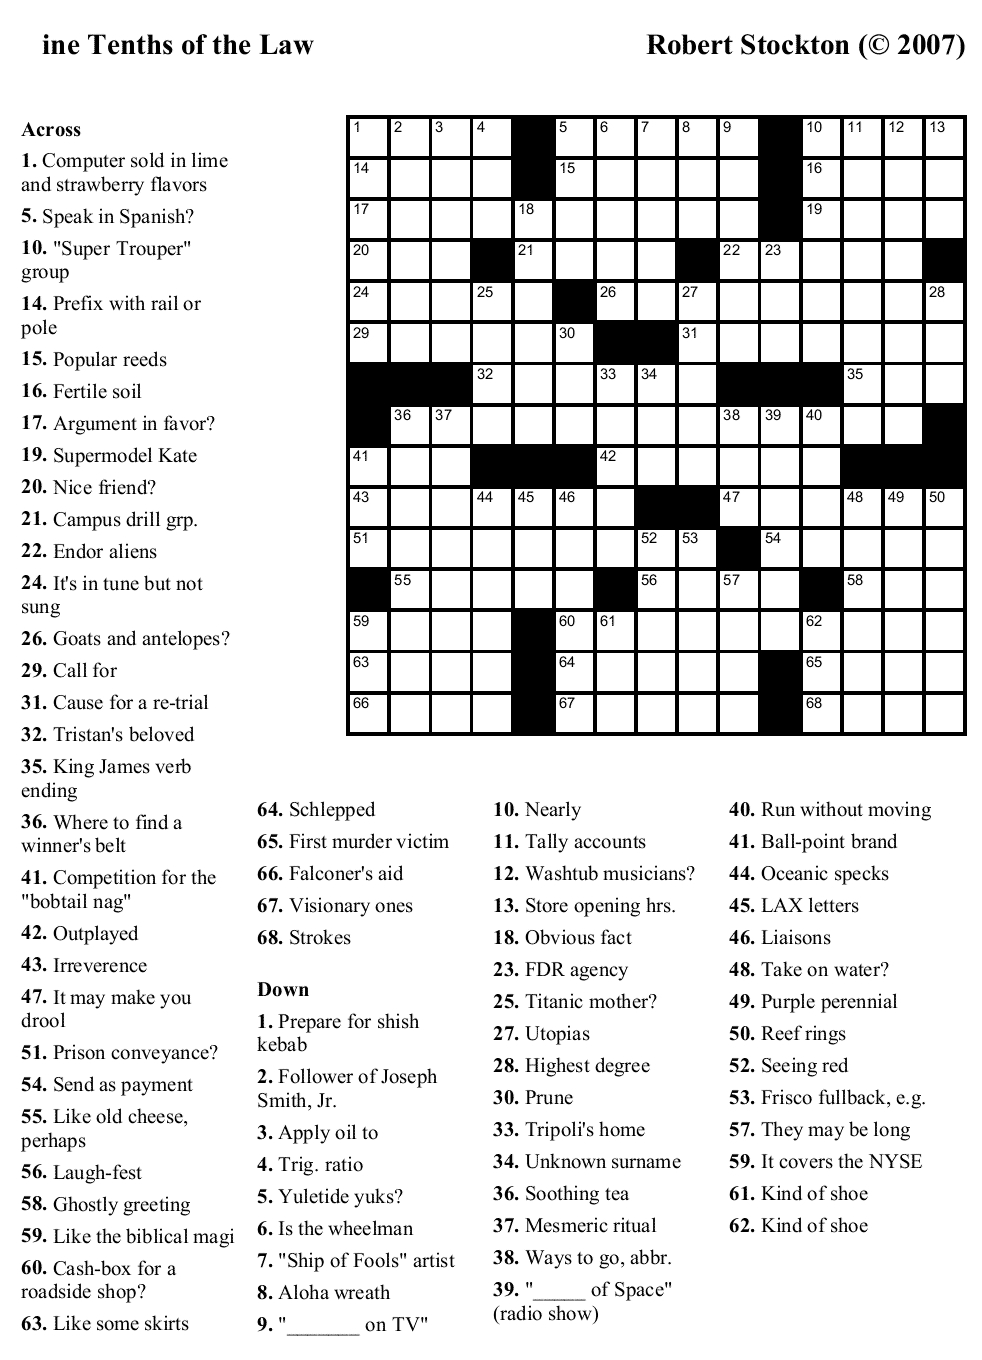 Crossword Puzzles Printable - Yahoo Image Search Results | Crossword - Printable Crosswords.net